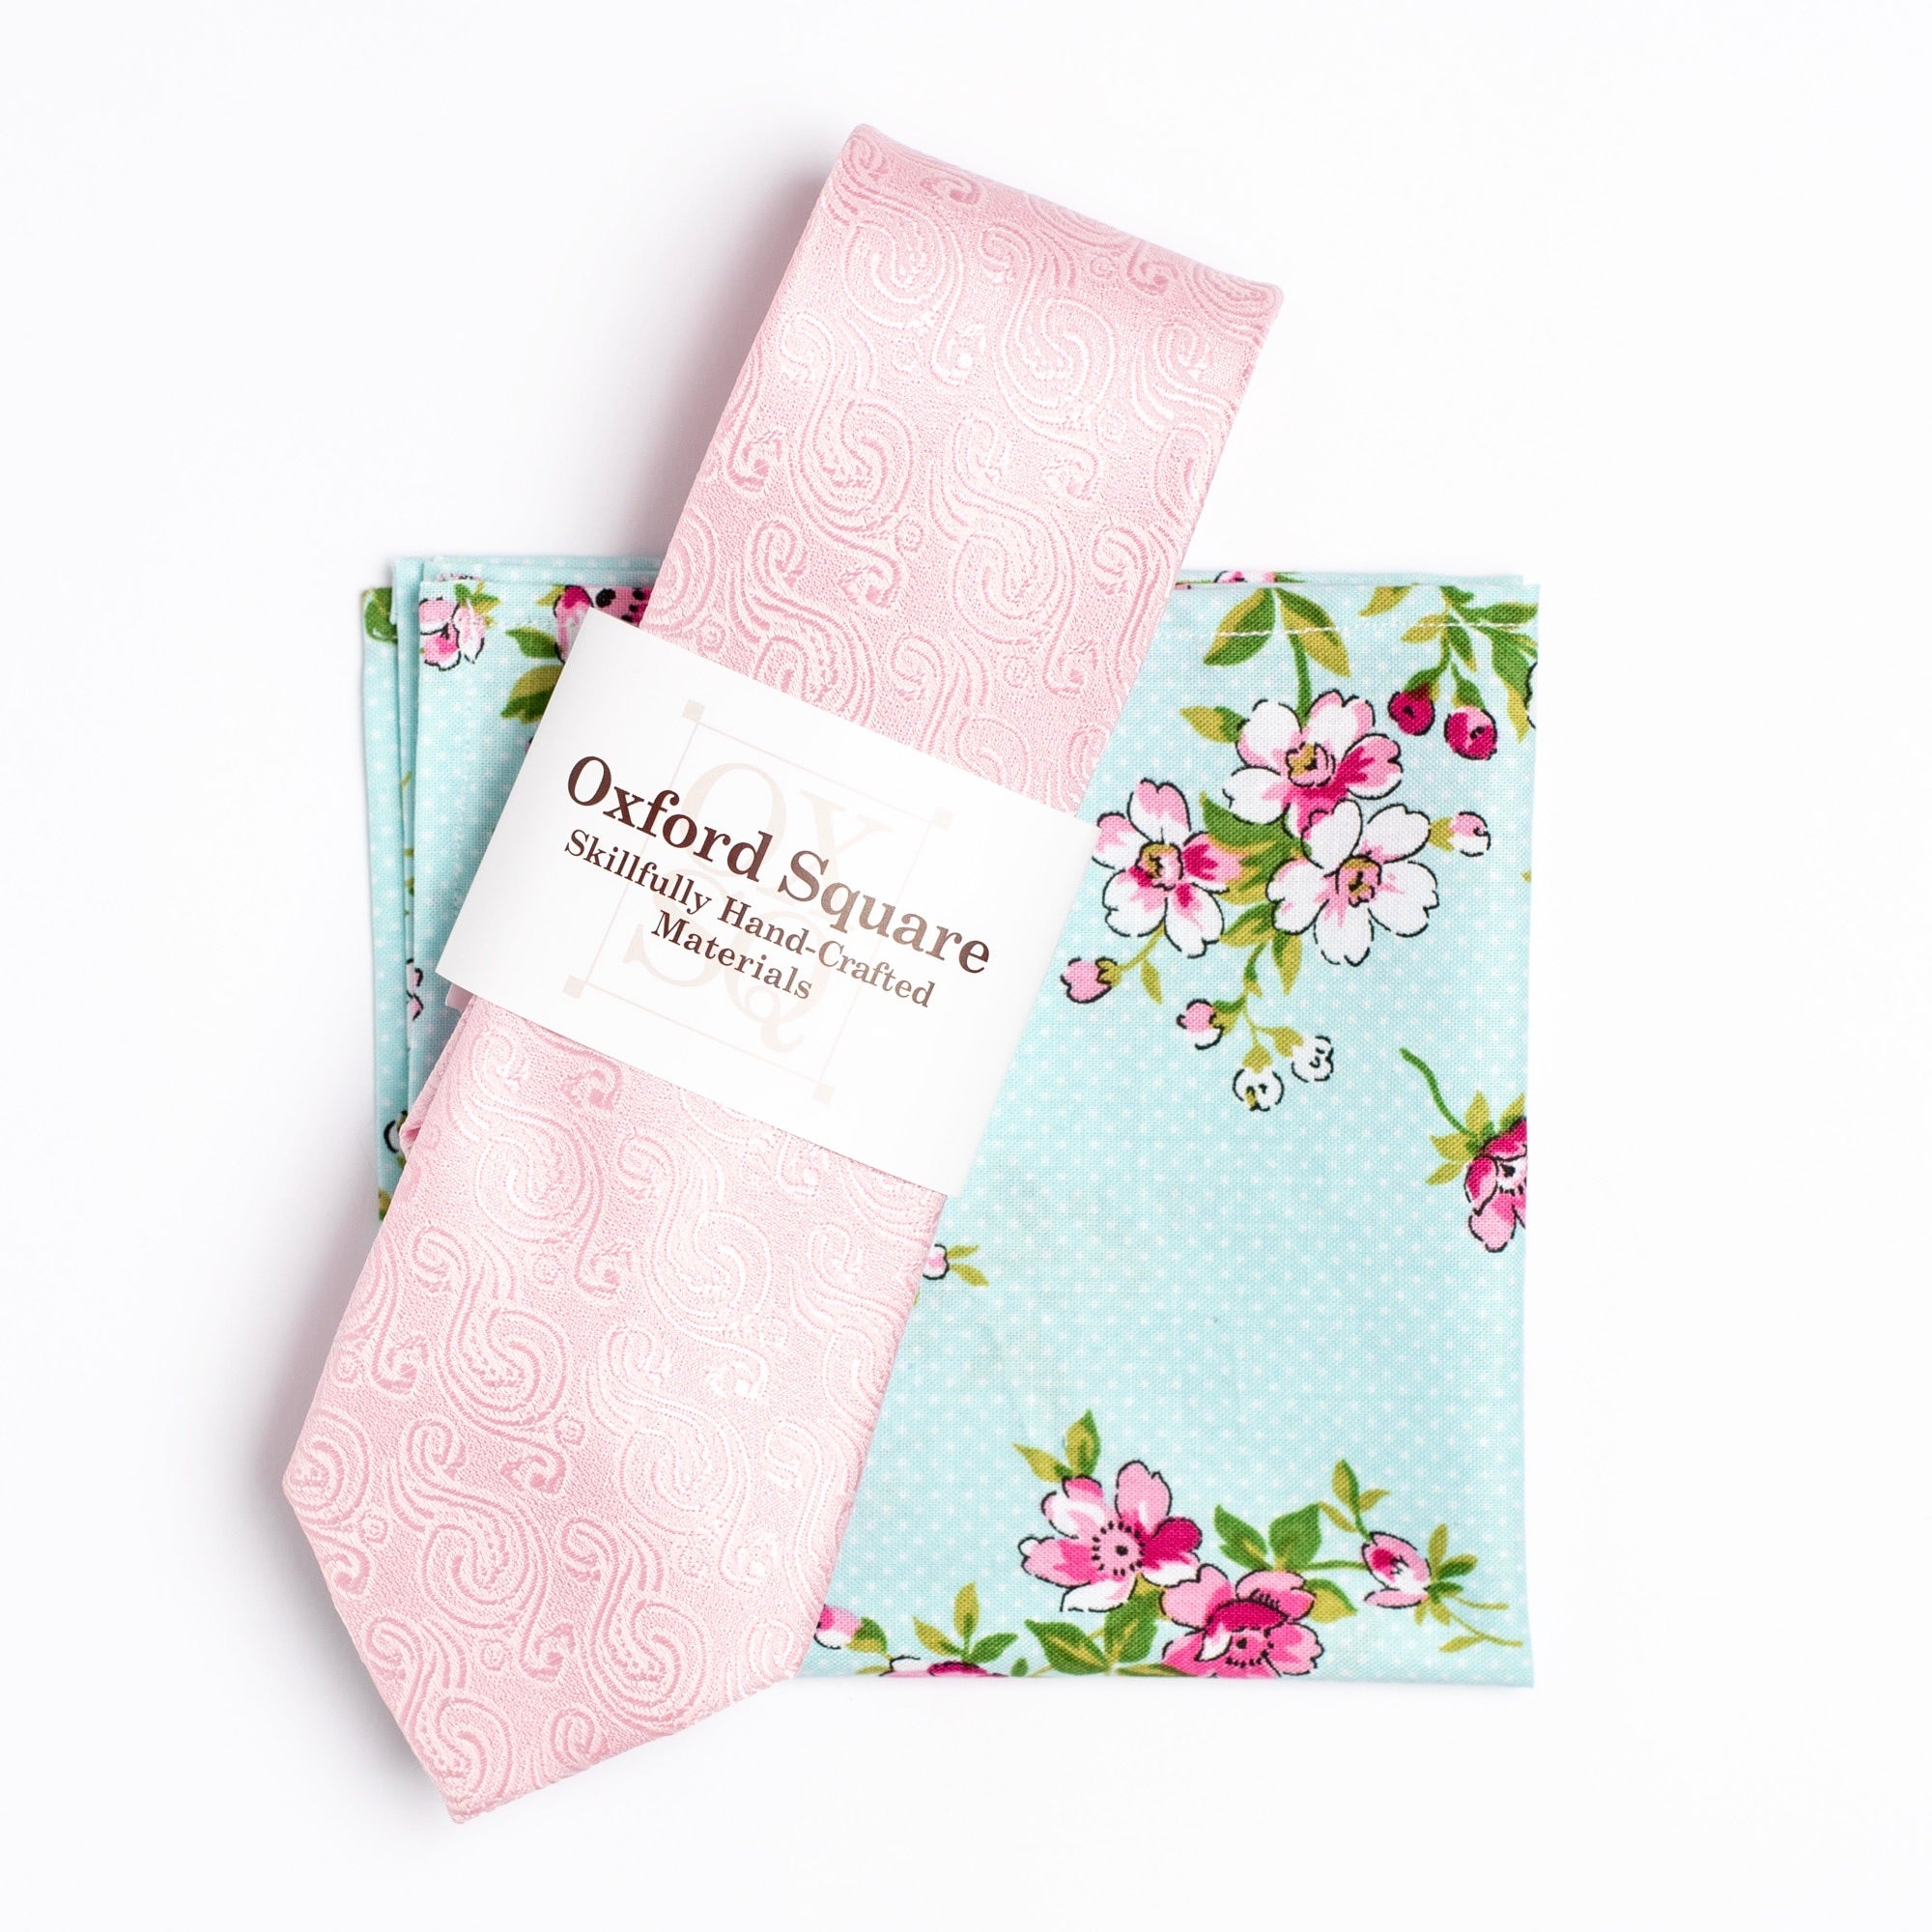 blue and pink floral pocket square and pink paisley tie pack - Oxford Square